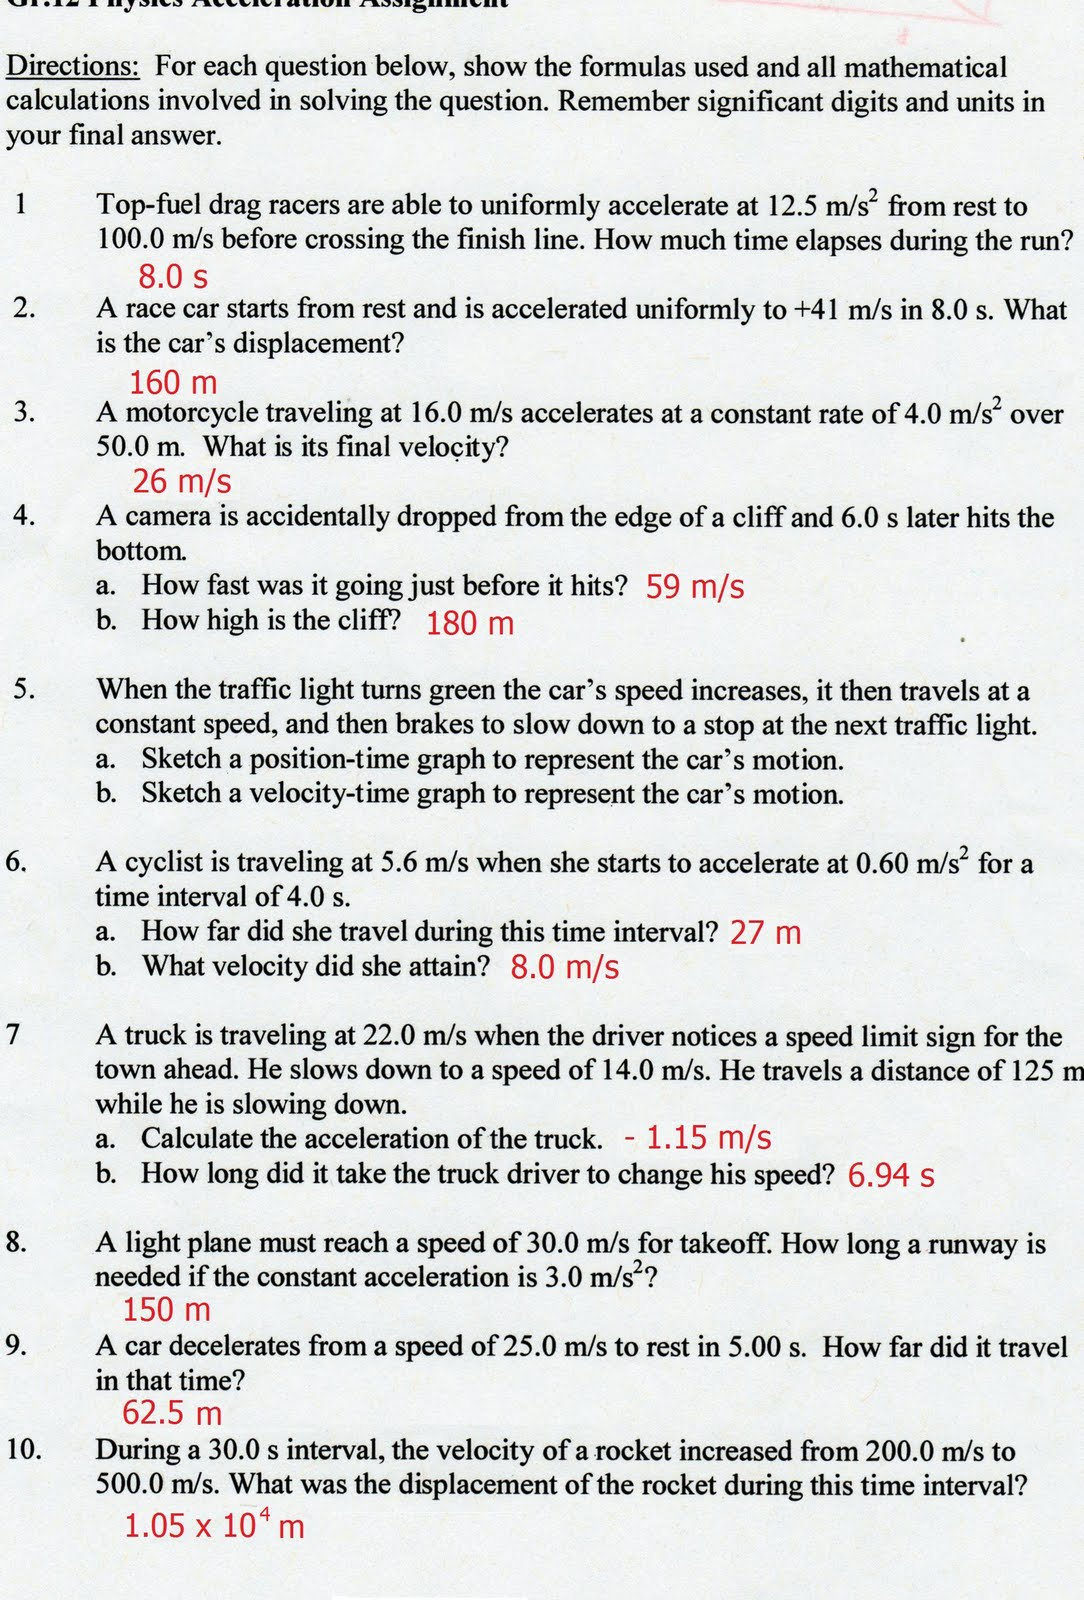 Worksheets Distance And Displacement Worksheet With Answers physics12fall2010 so im just reposting the worksheet with answers for those who might not have seen on amys previous post followed by question 5